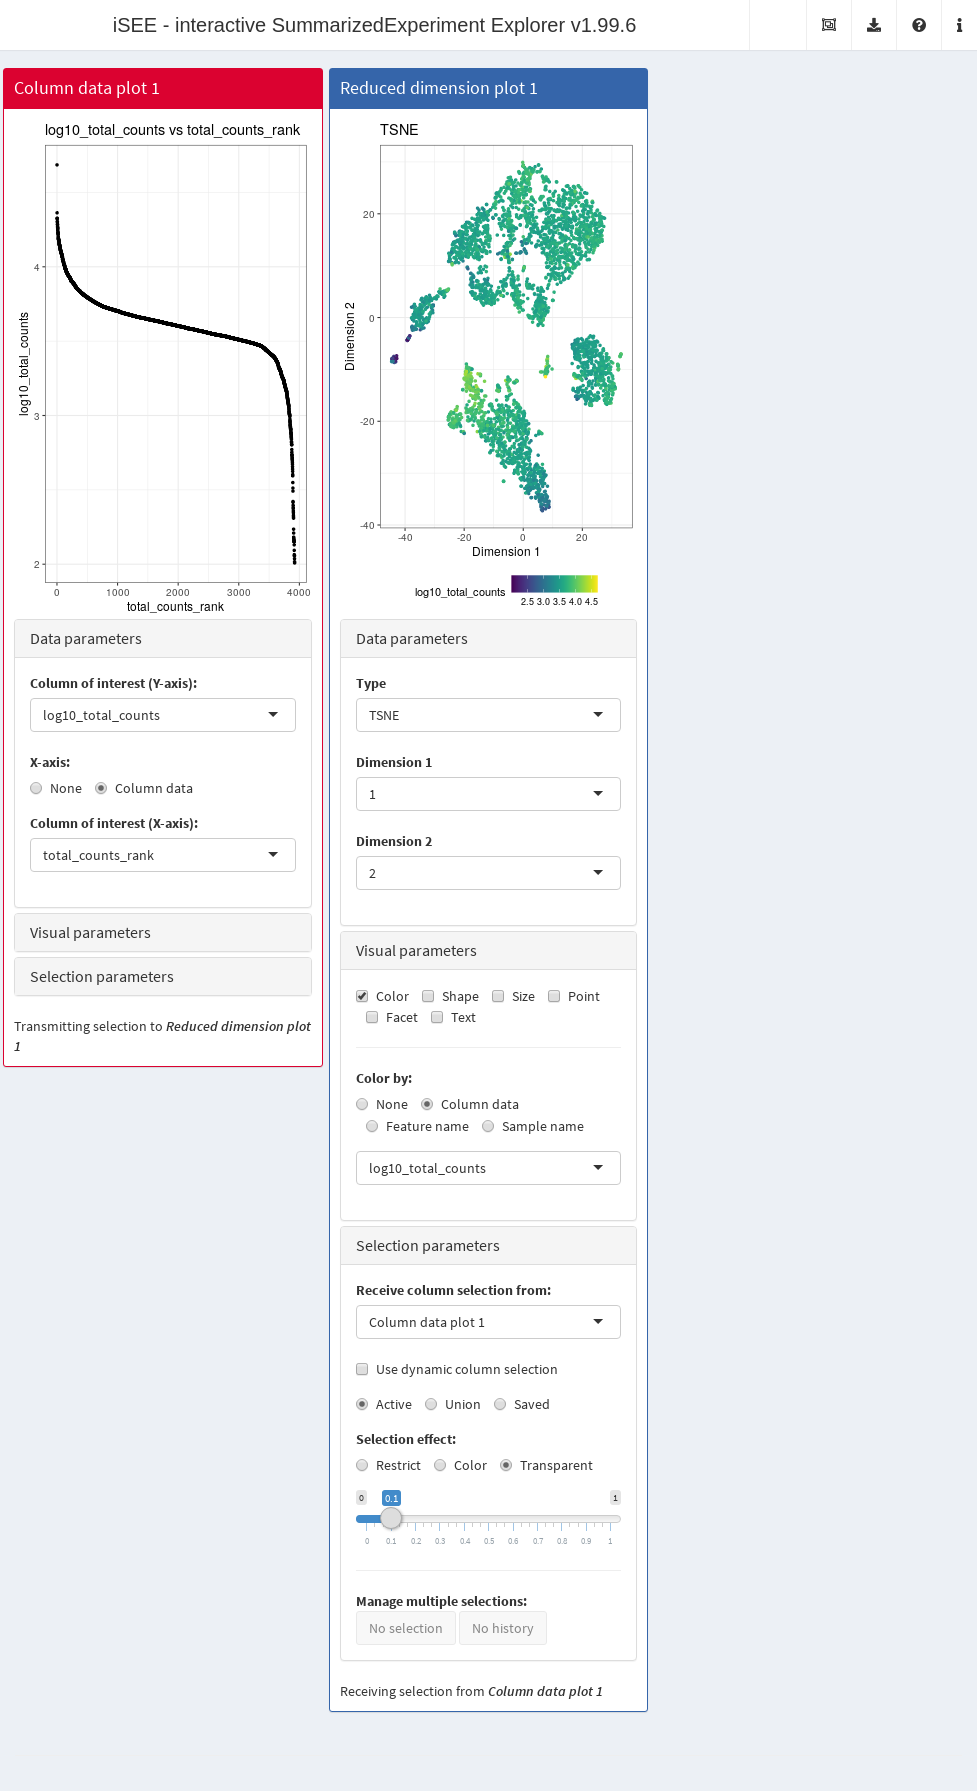 Screenshot of an _iSEE_ application for interactive exploration of quality control metrics.